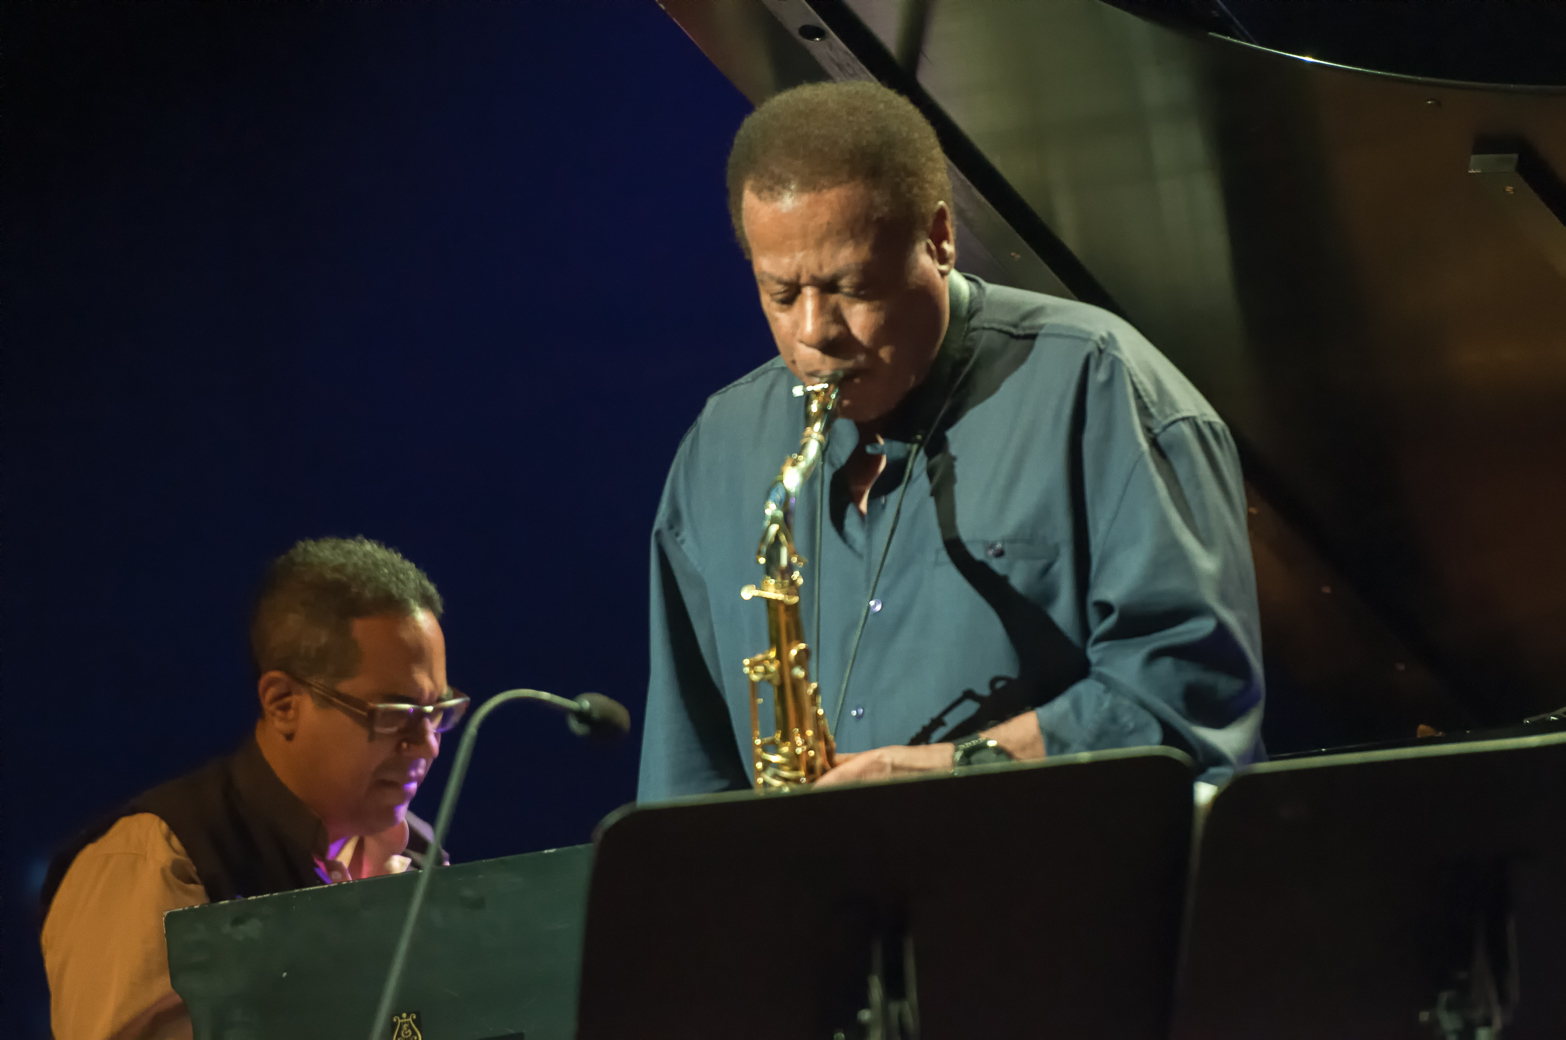 Wayne shorter and danilo perez at the montreal international jazz festival 2013